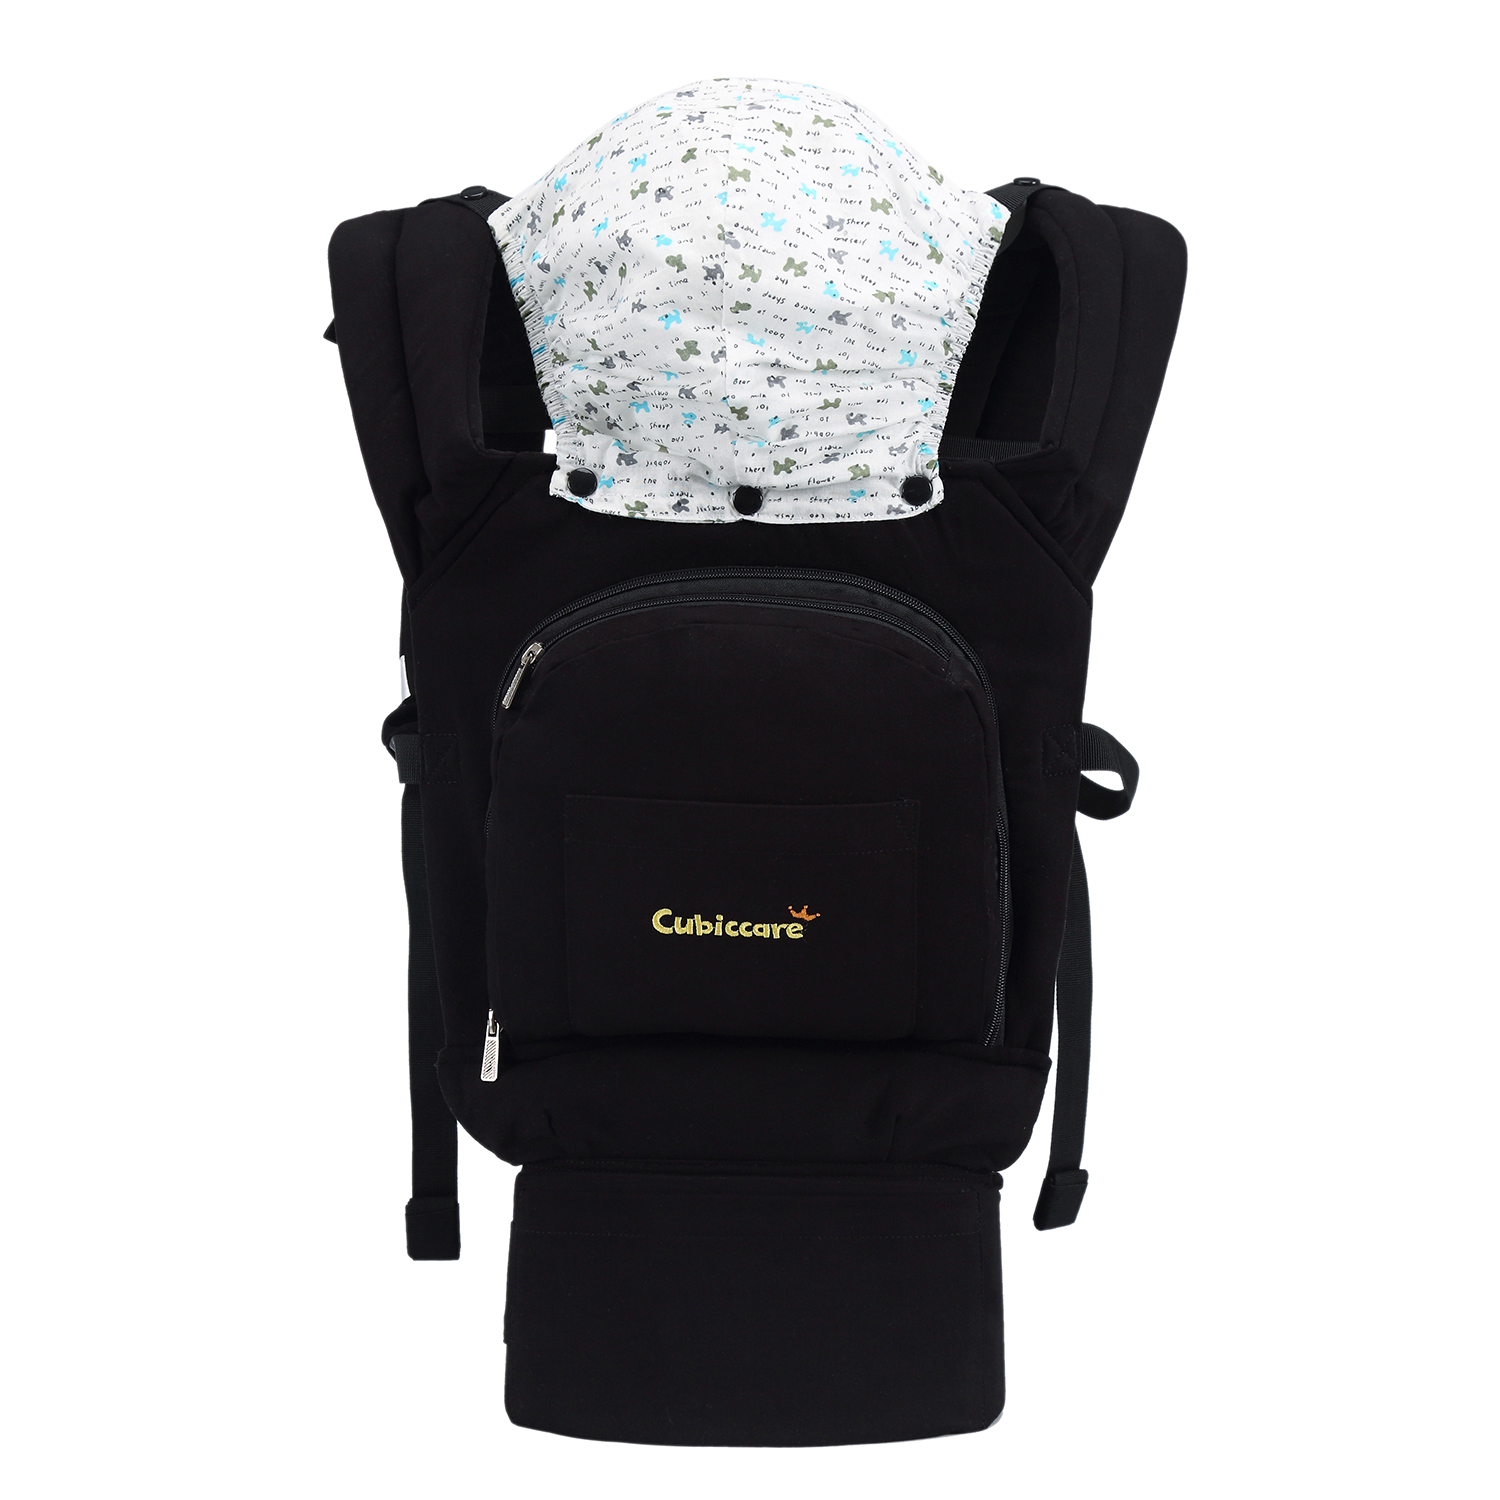 Baby Carrier for Infants and Toddlers 3 Carrying Positions by Kanstar